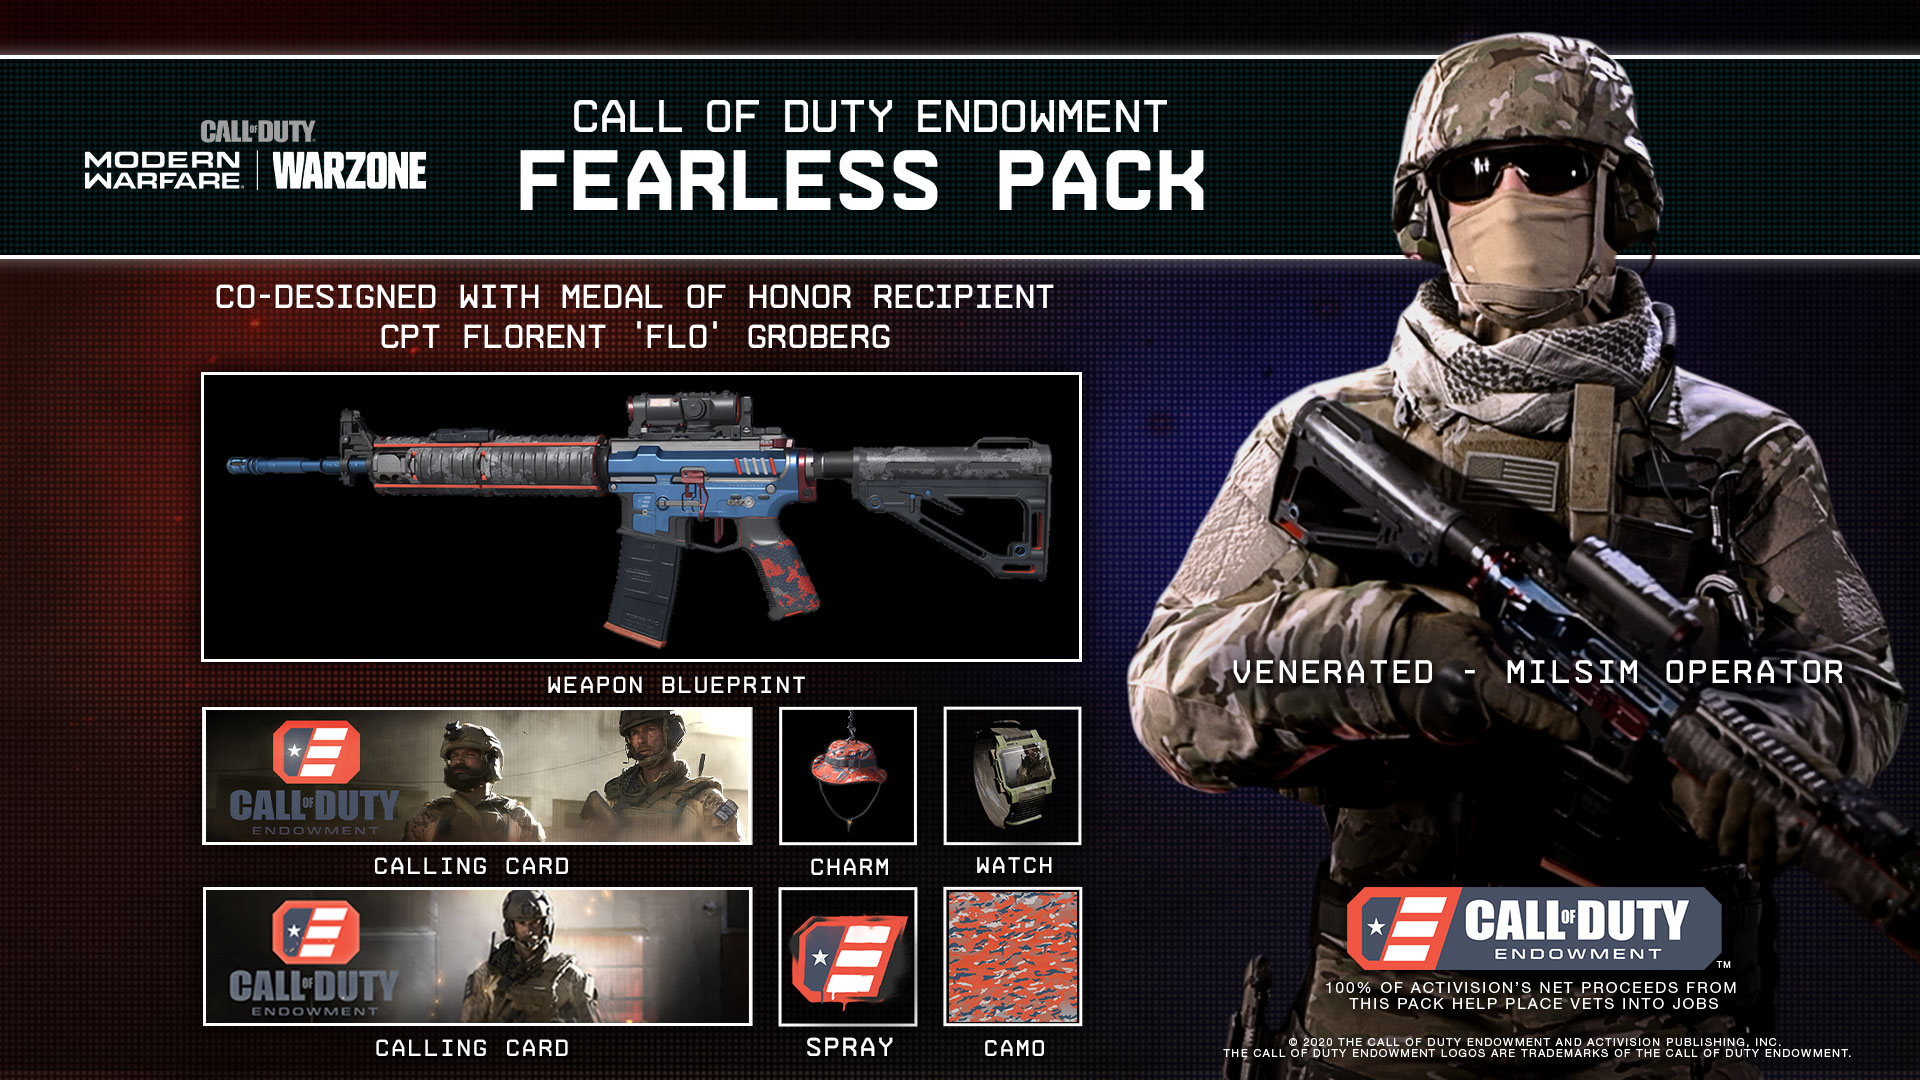 Fearless pack items